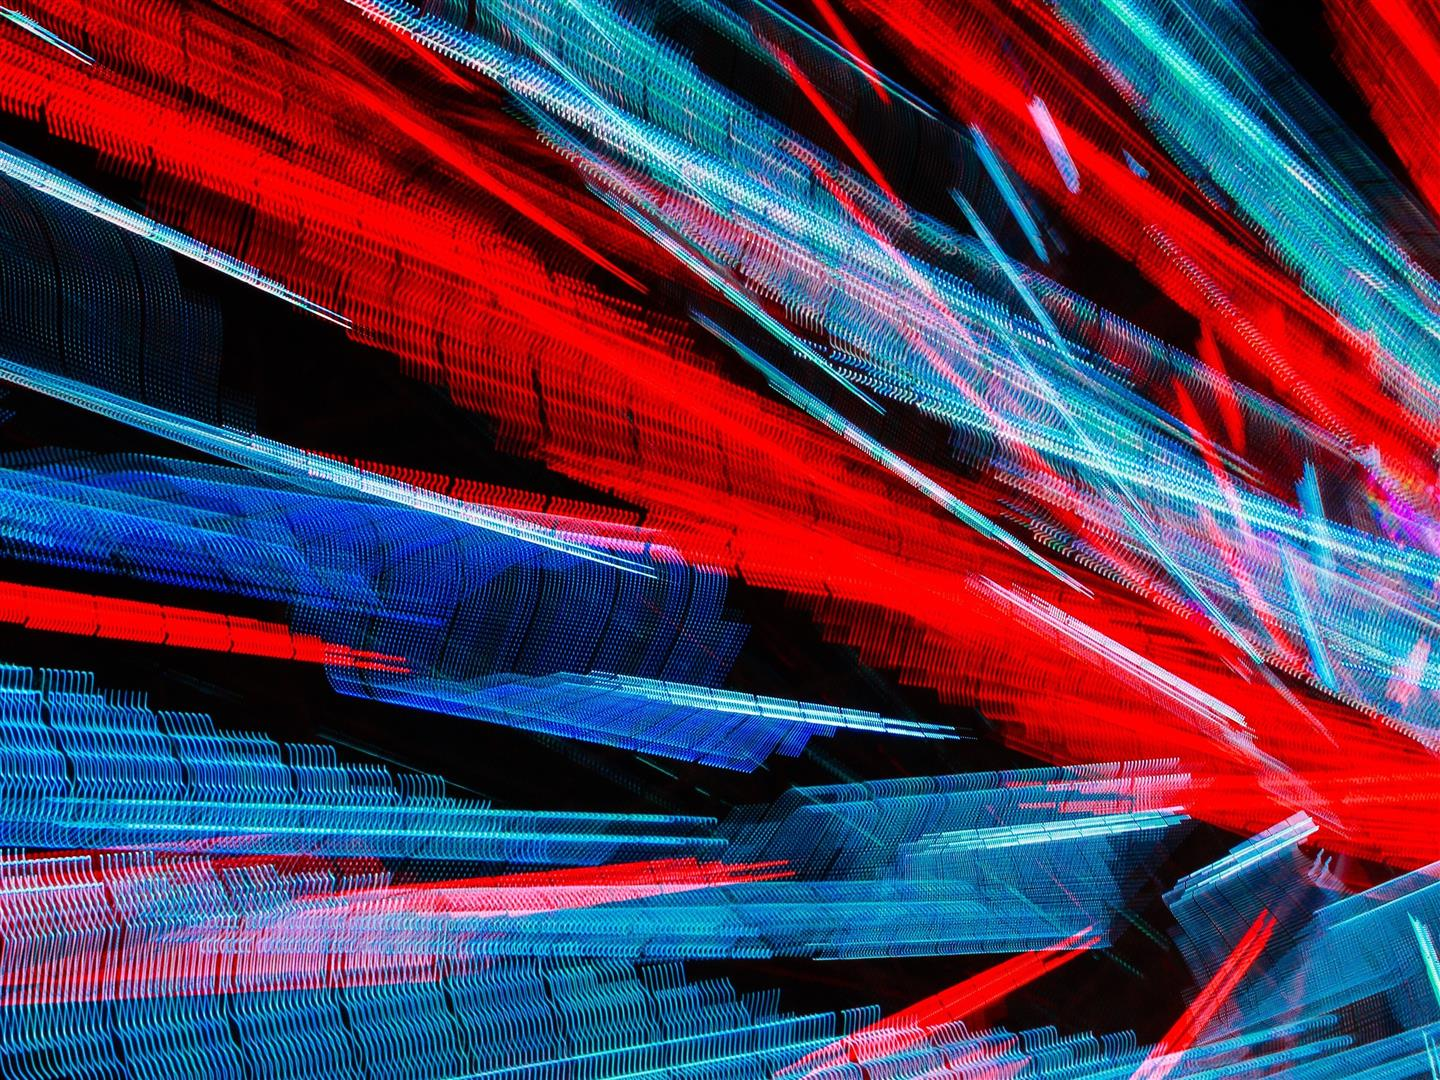 1440x1080 Red and Blue Design Abstract 4K Wallpaper